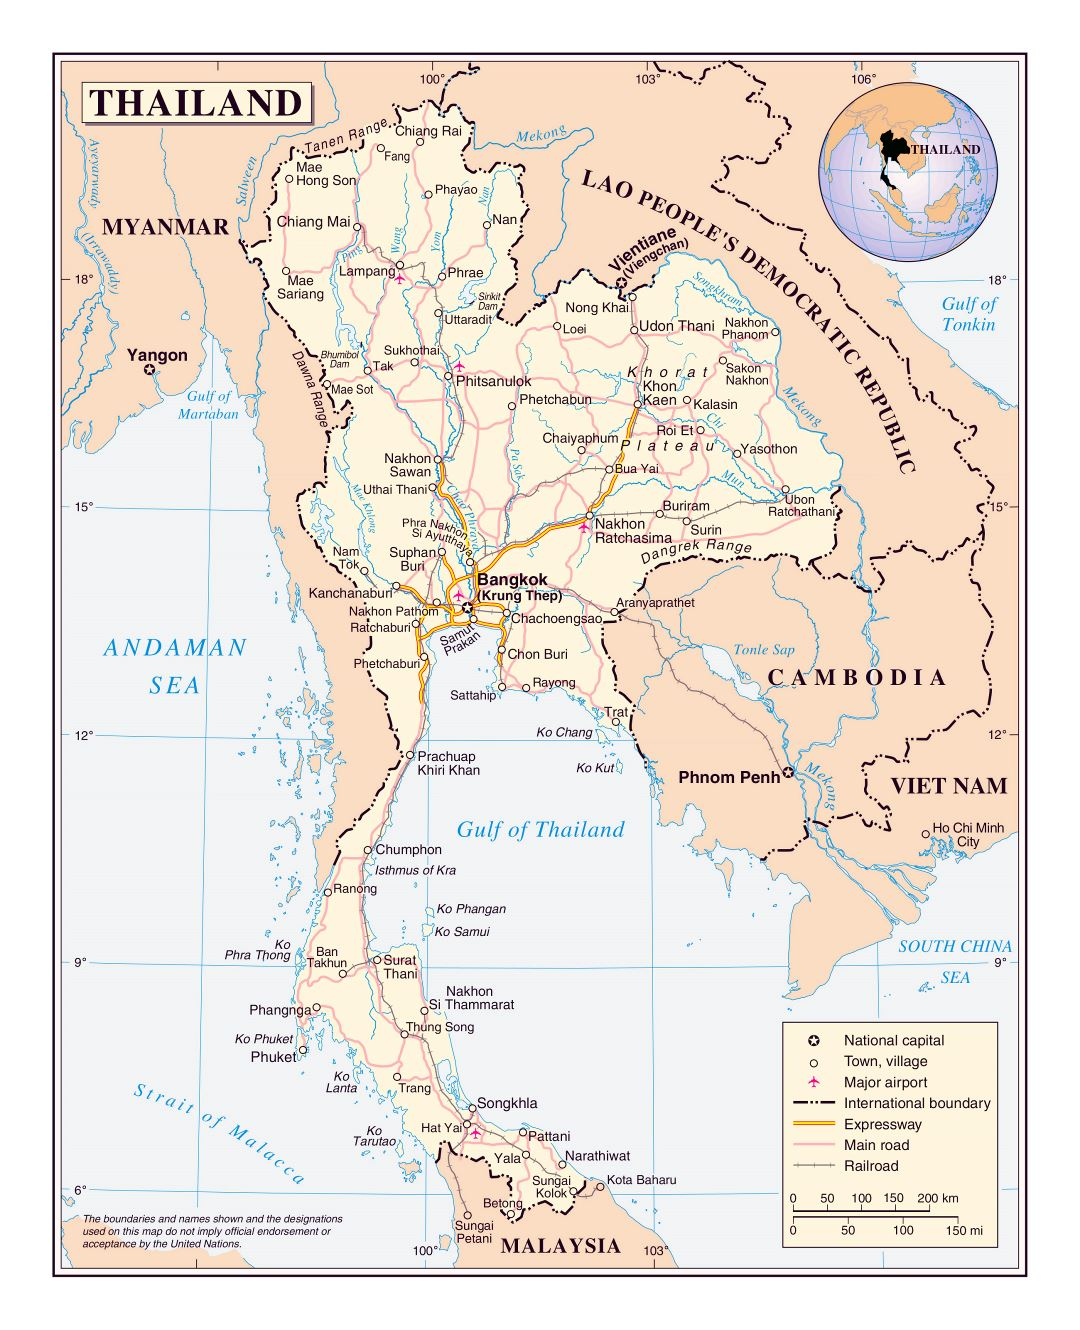 Large detailed political map of Thailand with roads, railroads, major cities and airports